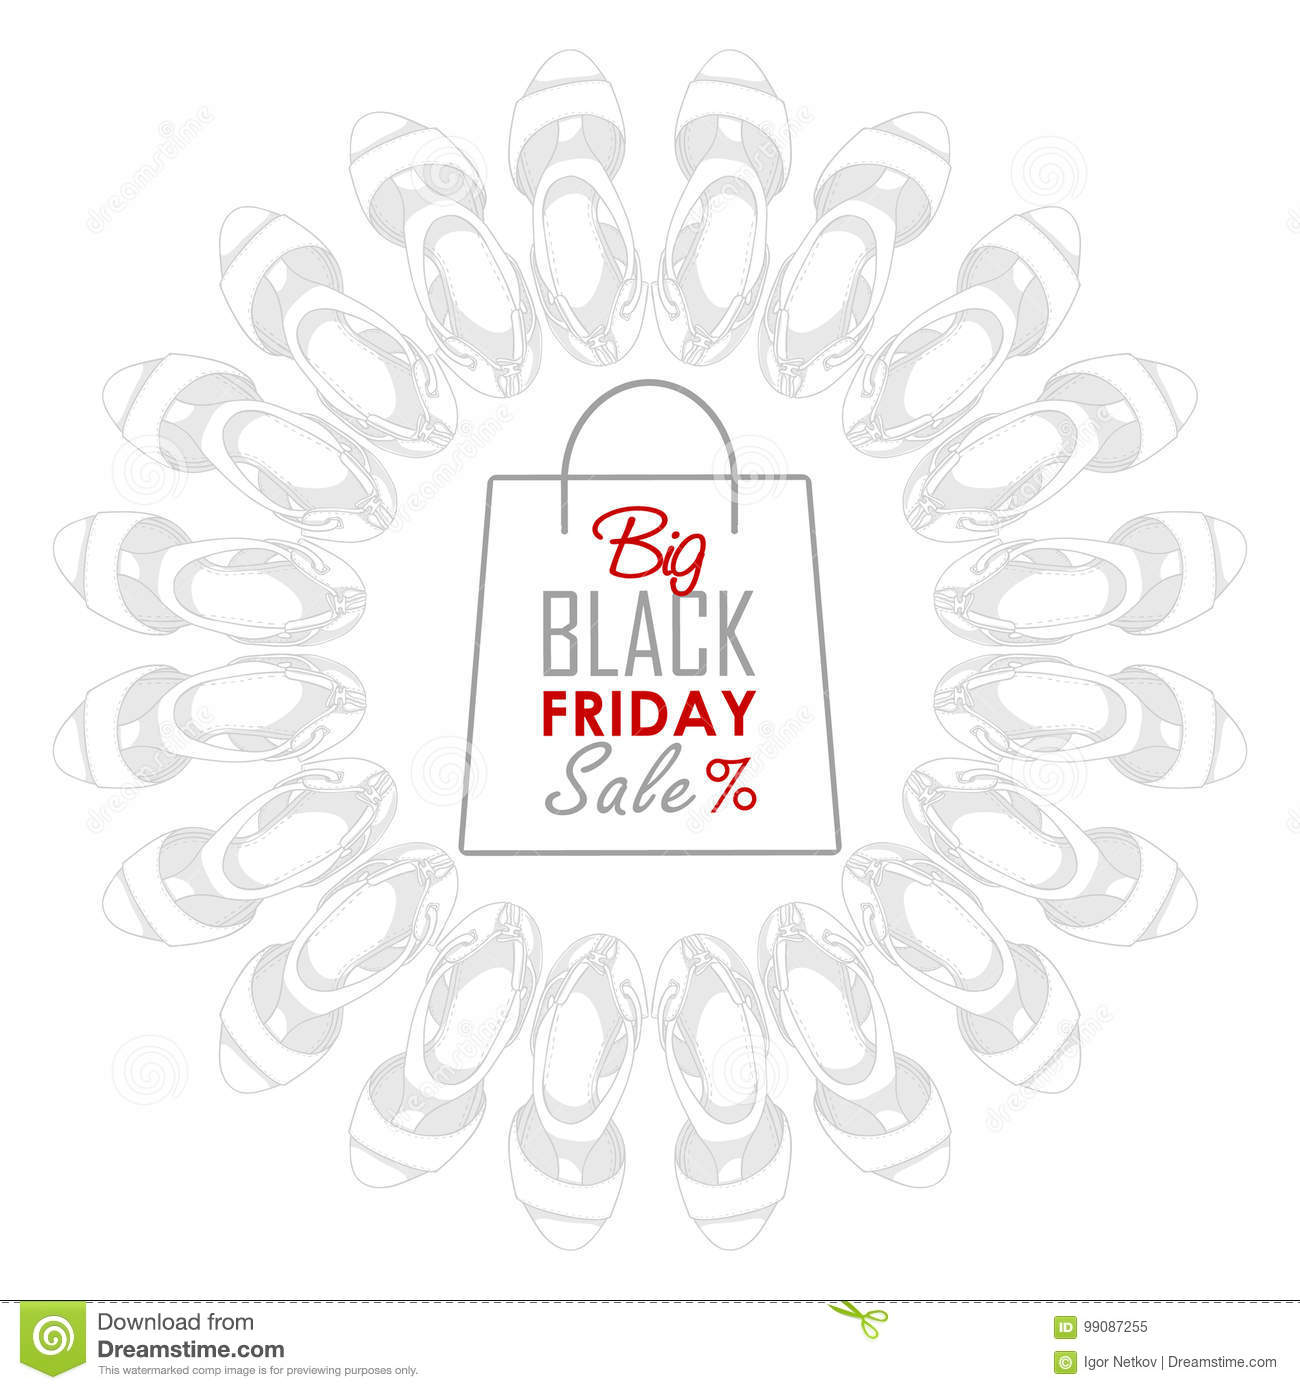 Black friday shoes sale stock vector. Illustration of flat